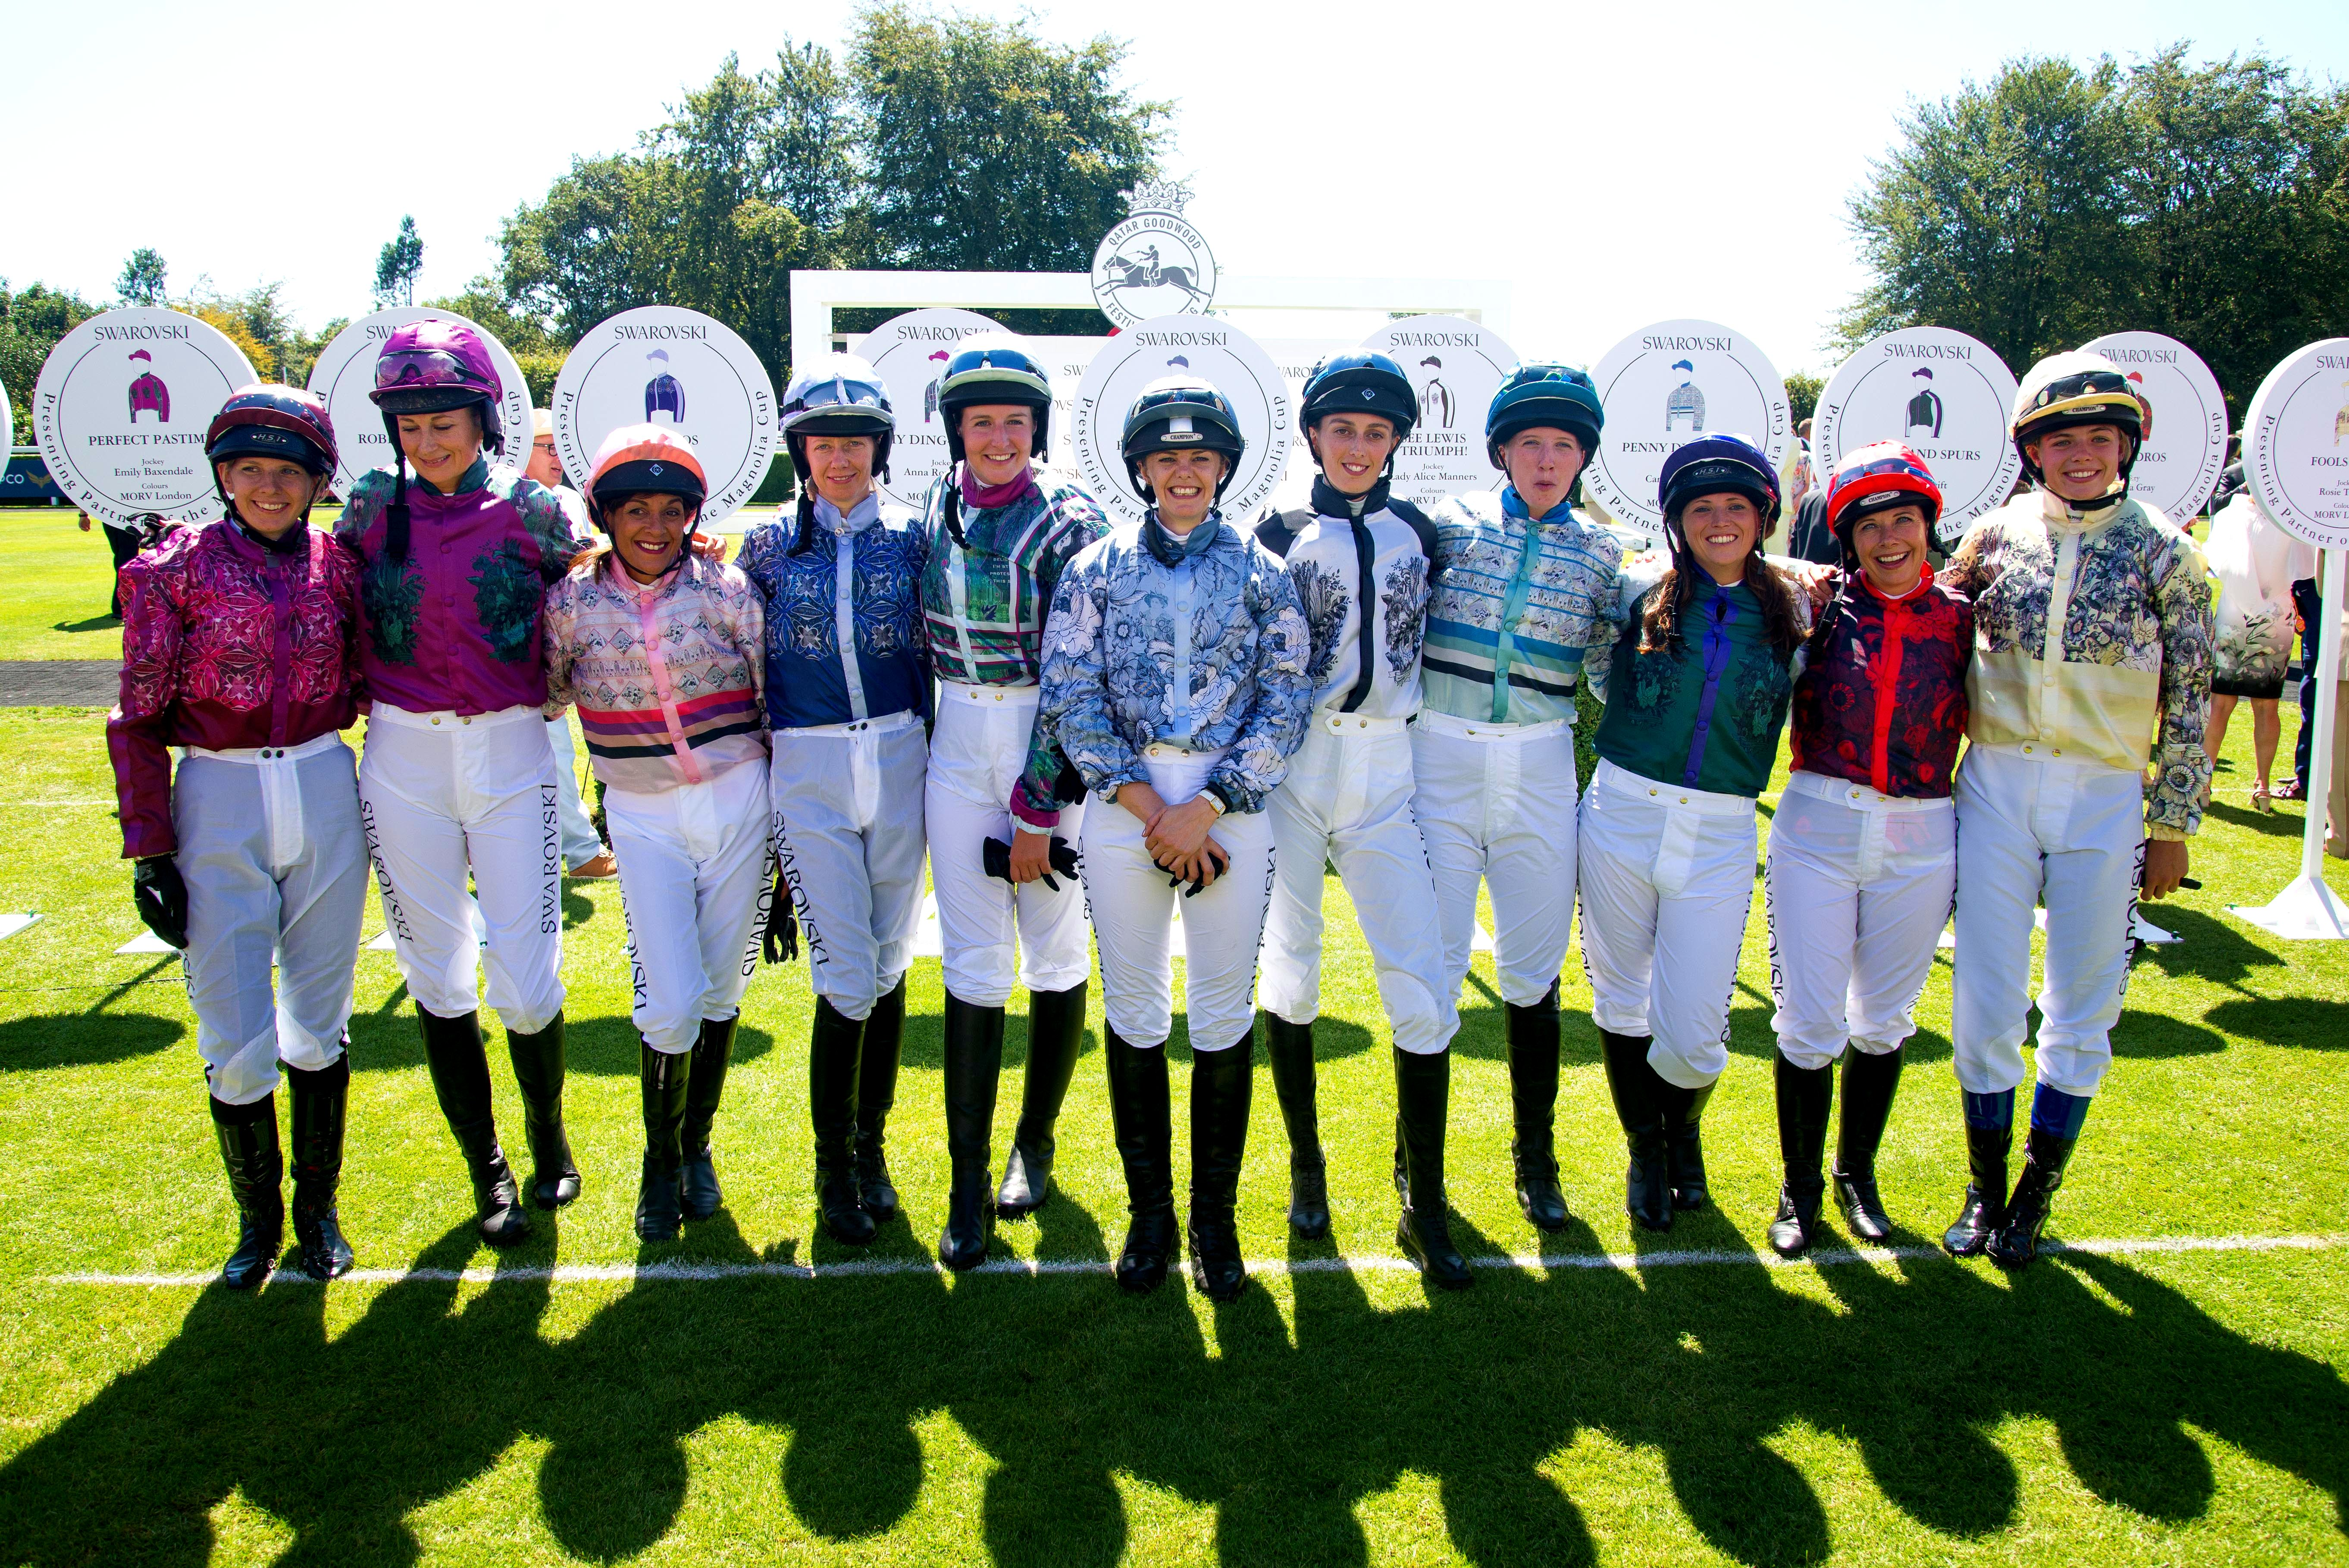 Magnolia Cup Jockeys at Qatar Glorious Goodwood Festival, West Sussex, UK - 02 Aug 2018